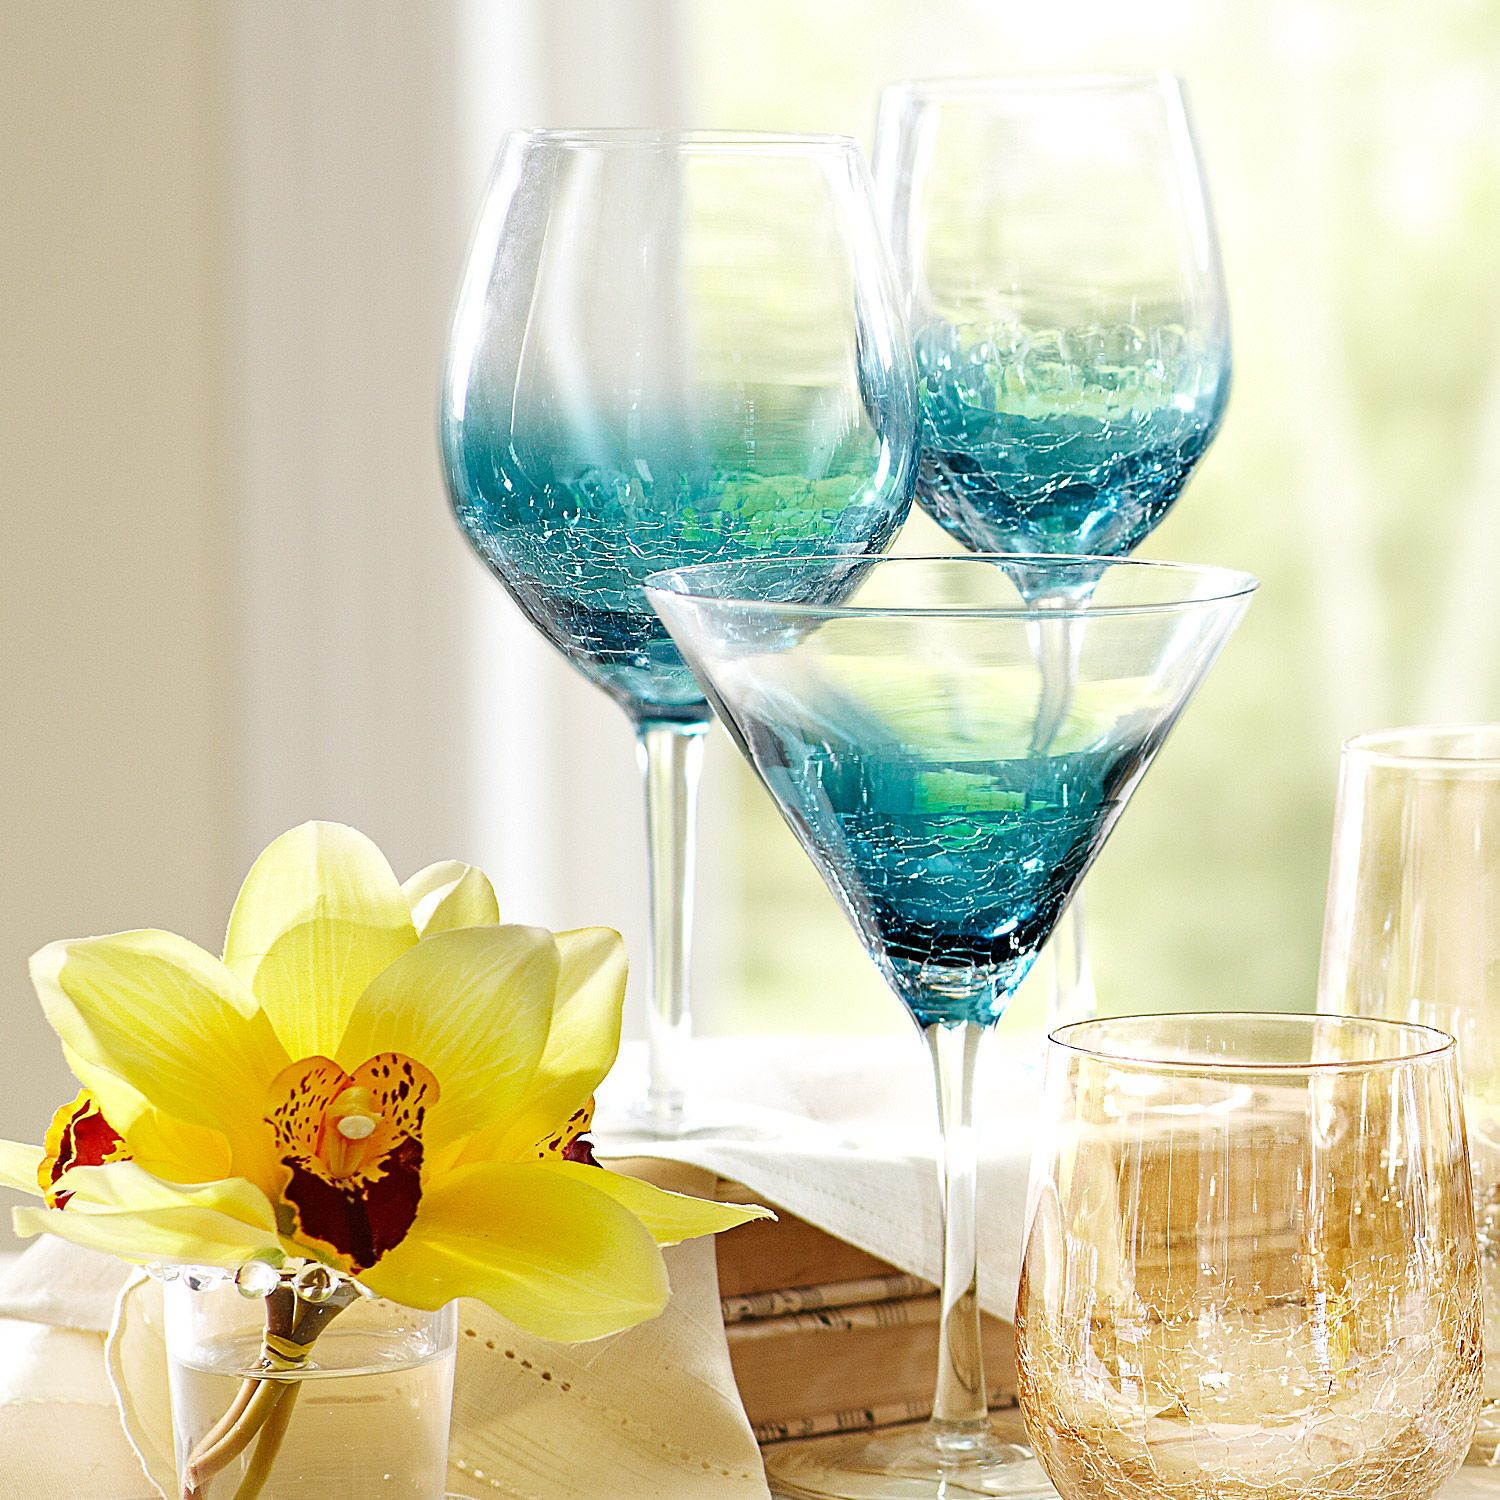 Crackle Teal Stemware | Things I Want and Love | Pinterest | Drinkware